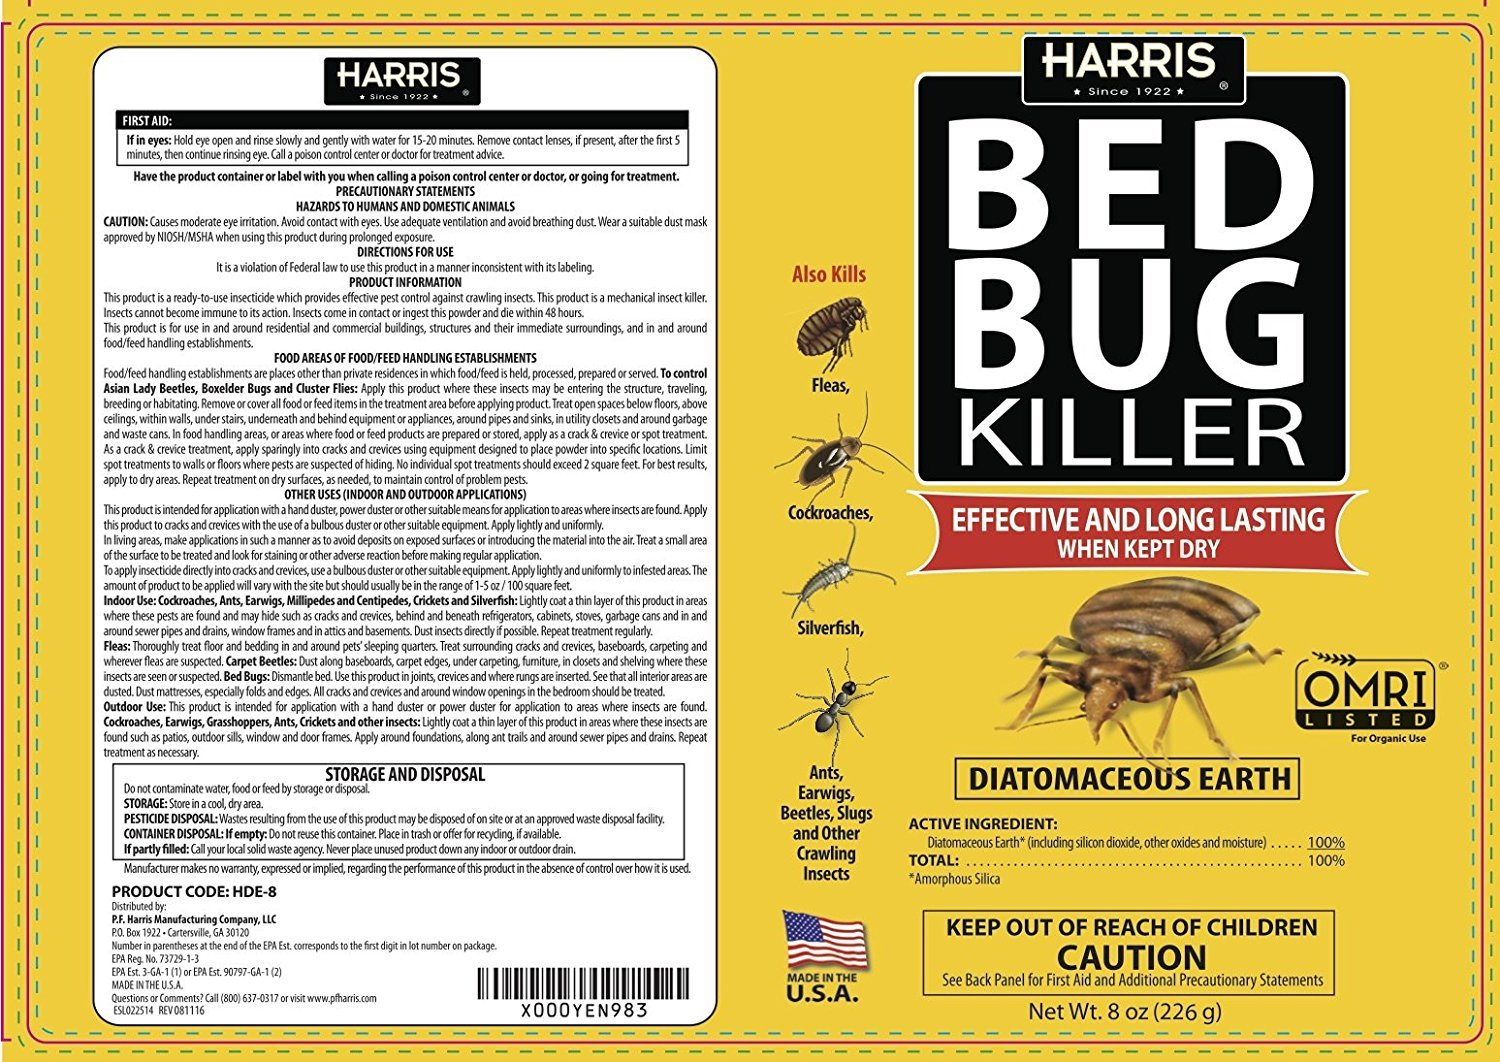 bug bed killer diatomaceous bugs oz brand us safer sb earth